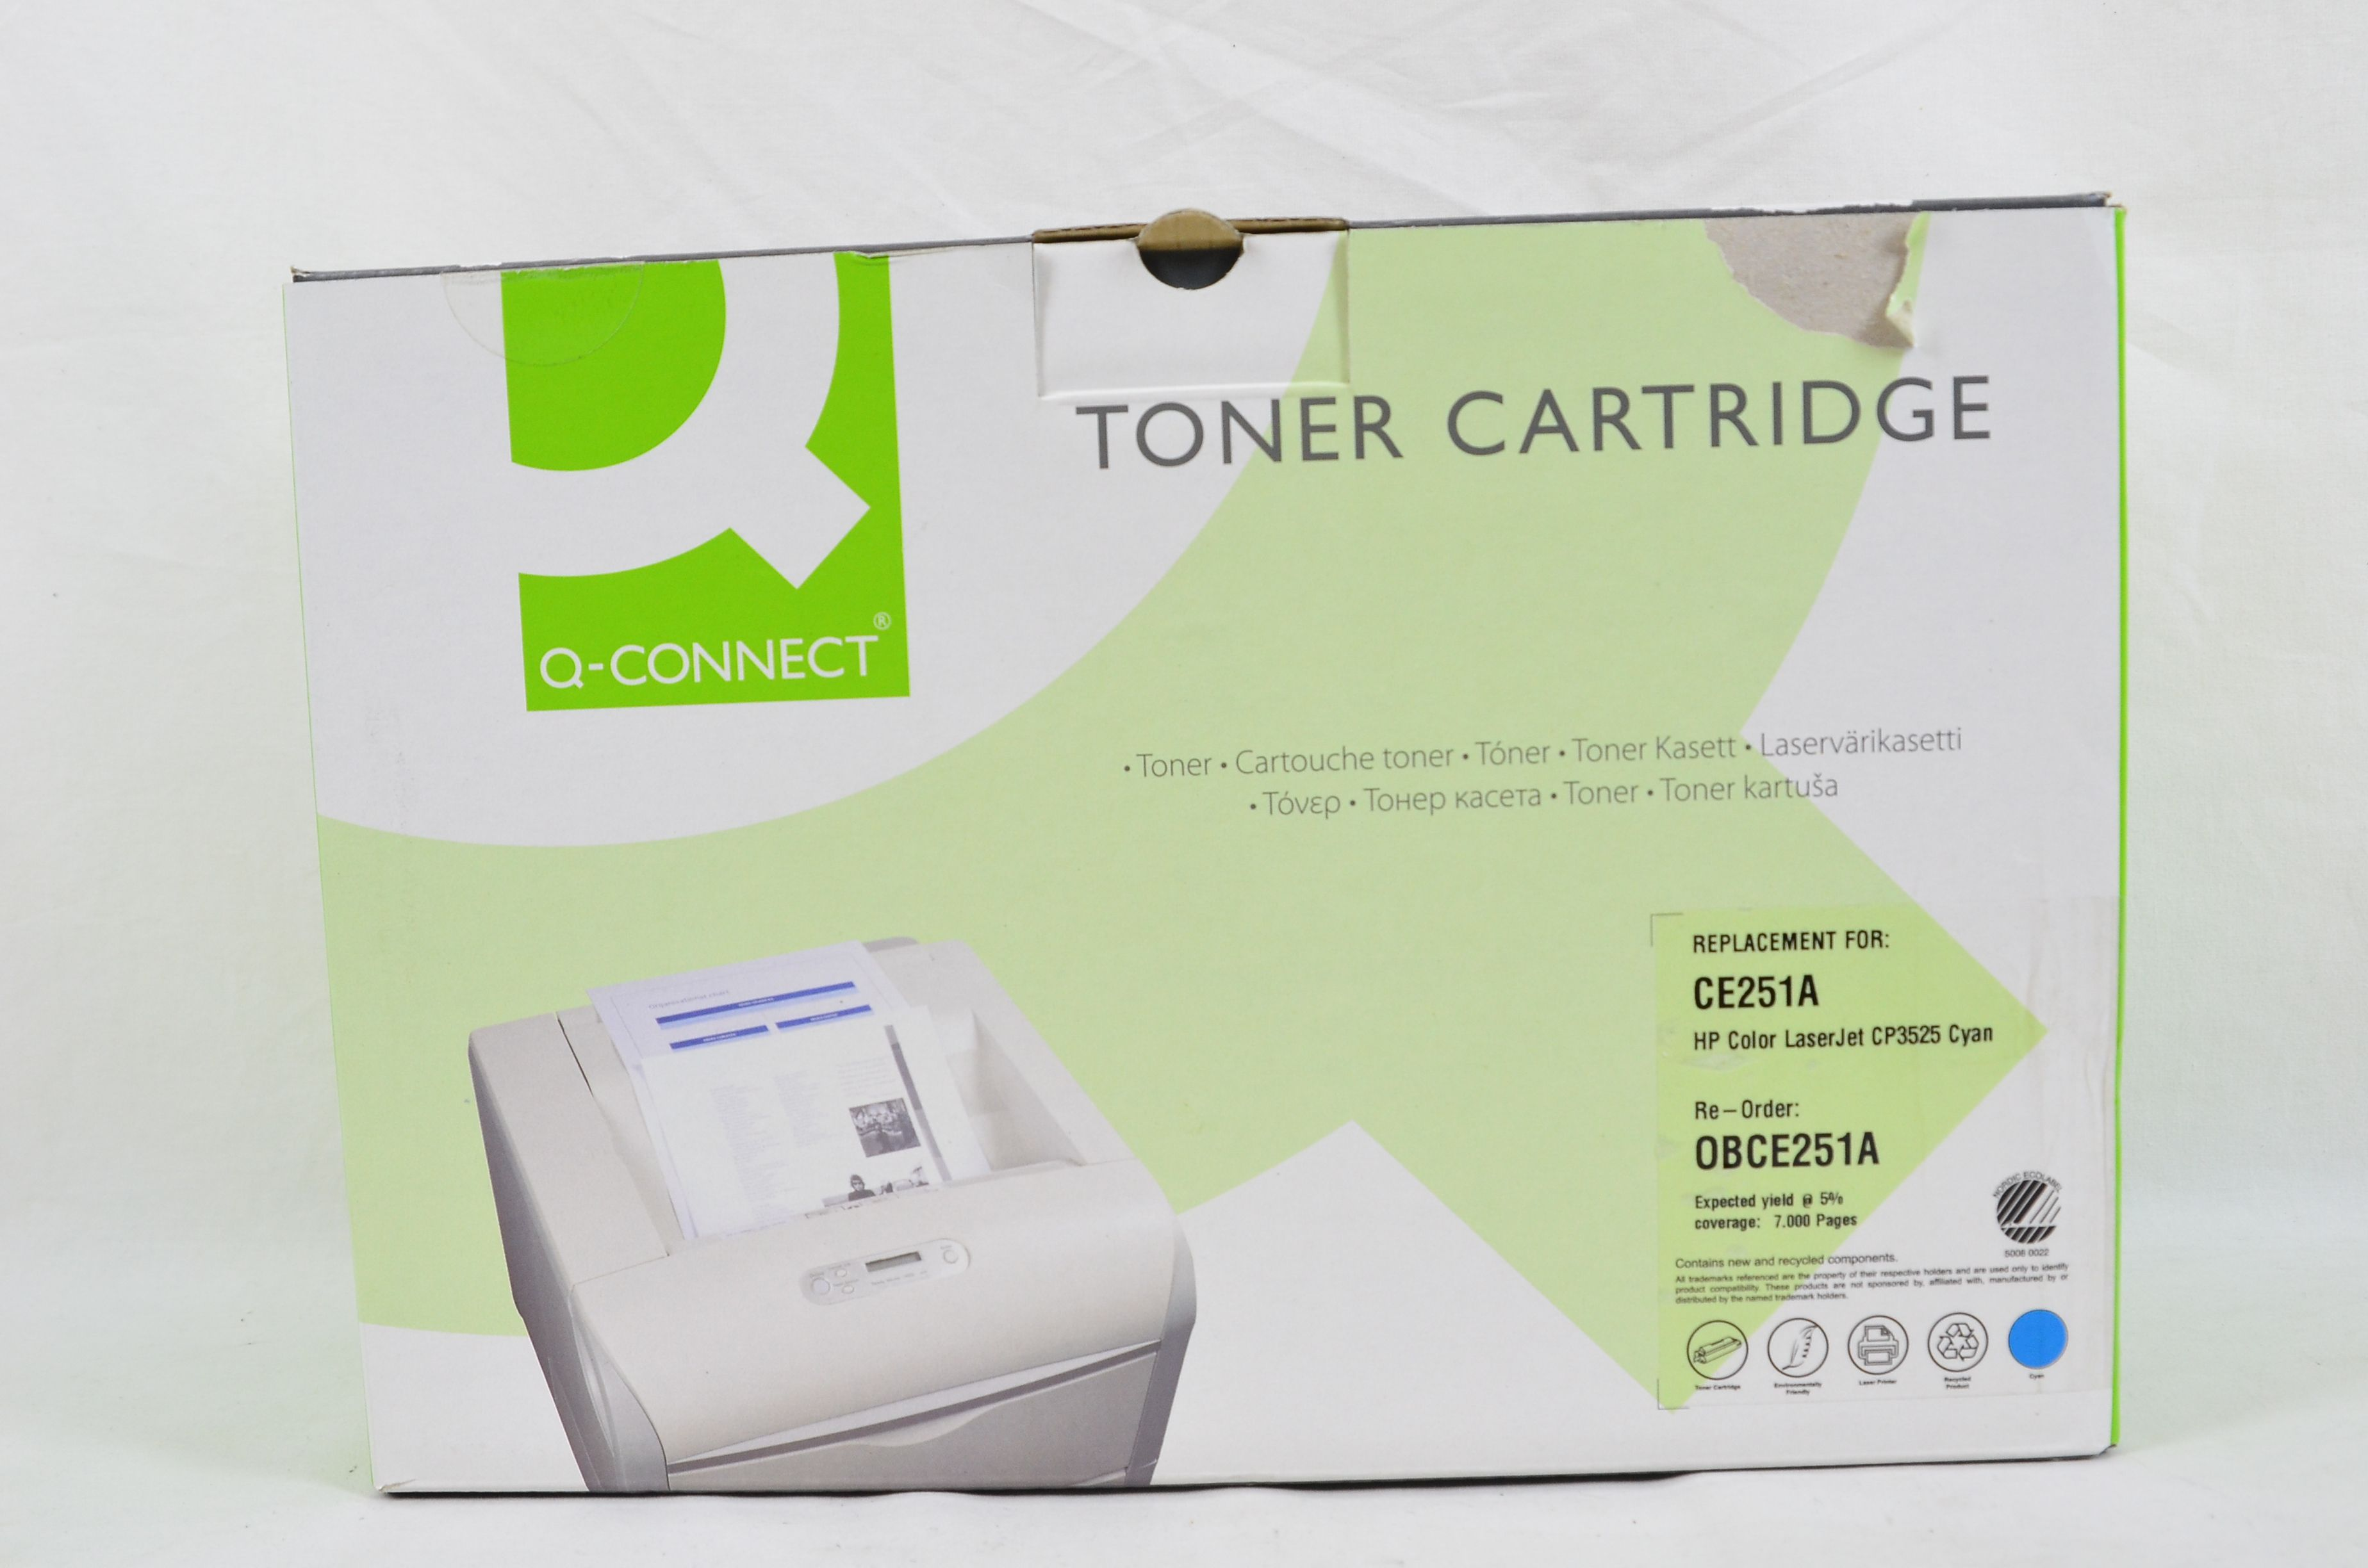 Q-Connect Compatible Toner Cartridge for HP CE251A - 7000 Pages - Cyan Thumbnail 1